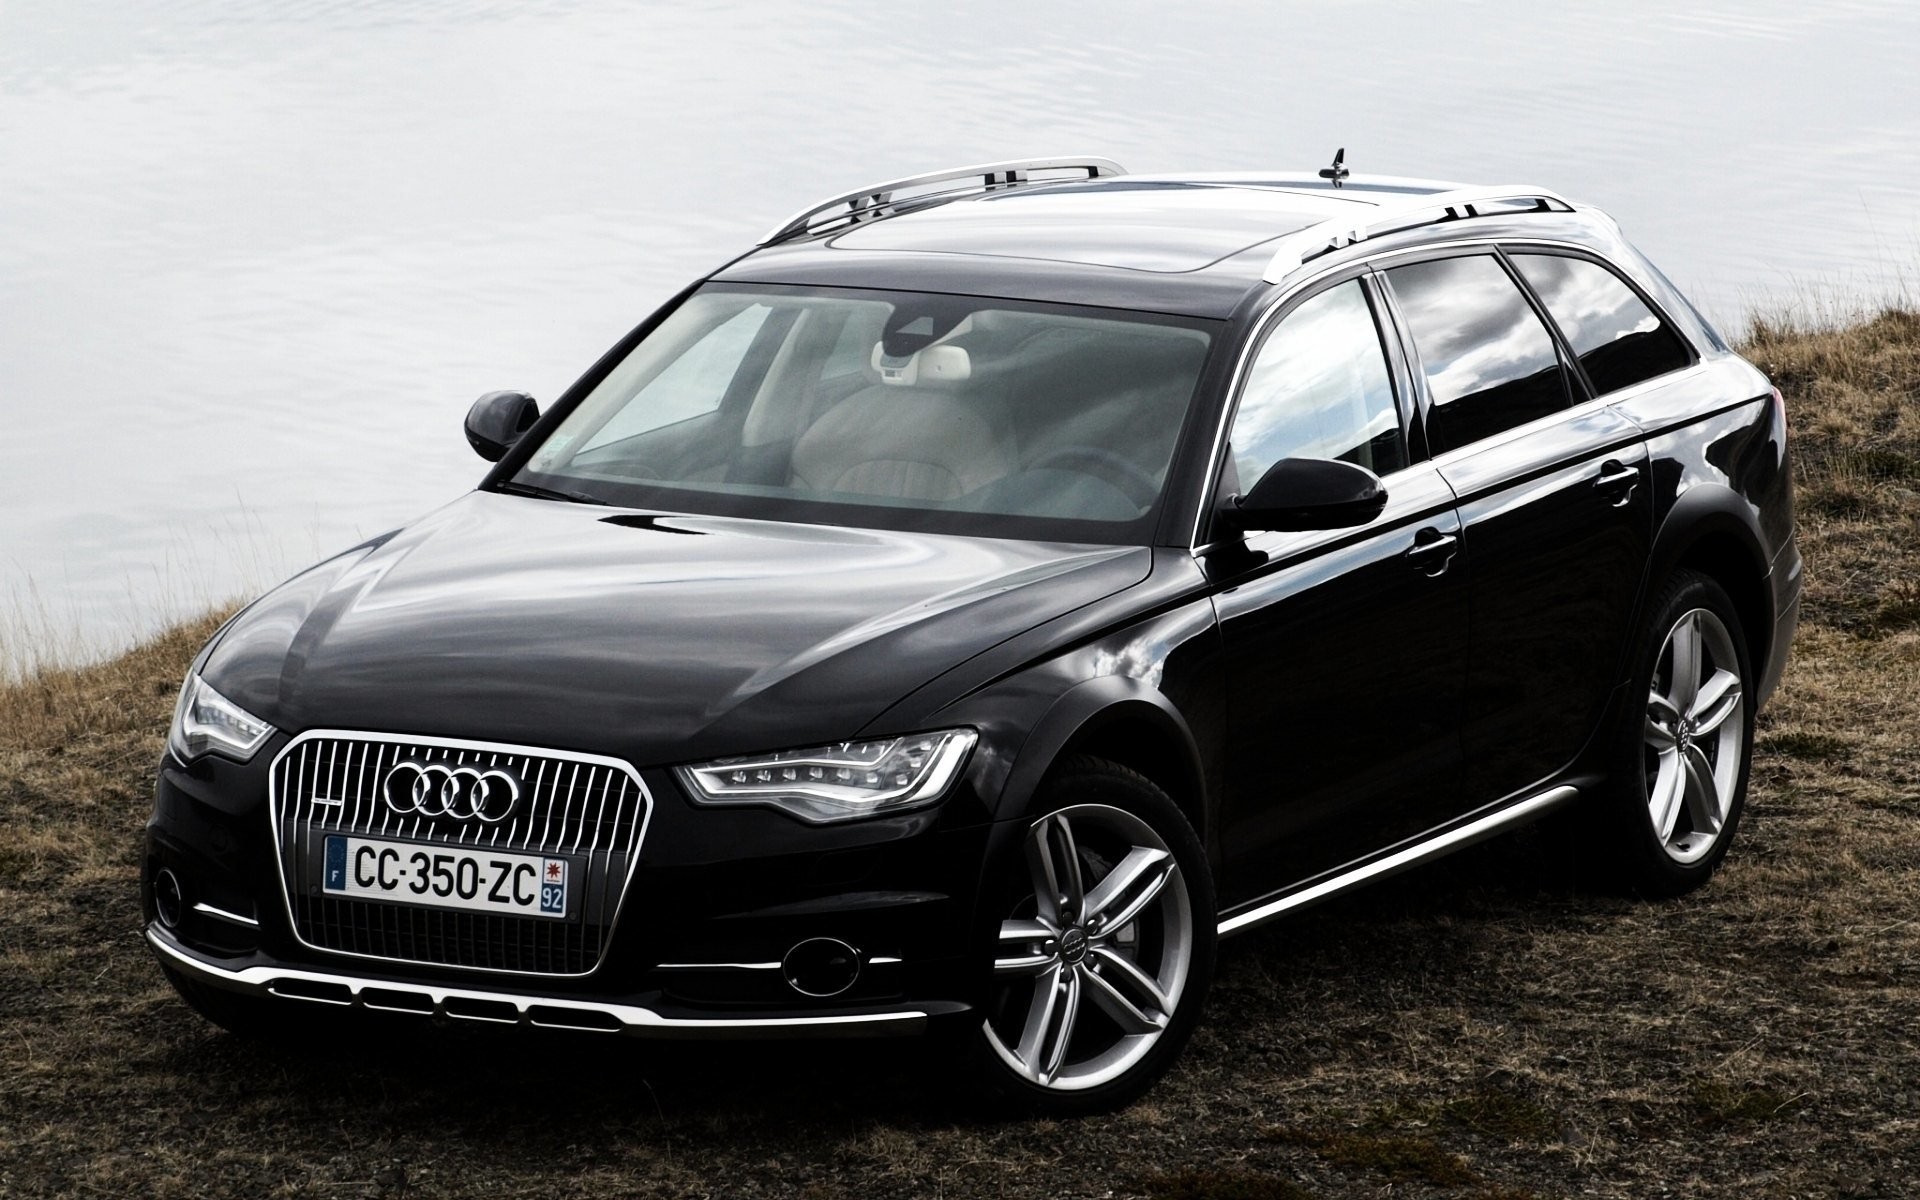 Latest Wallpaper Audi Q3 Hd Wallpapers Free Download